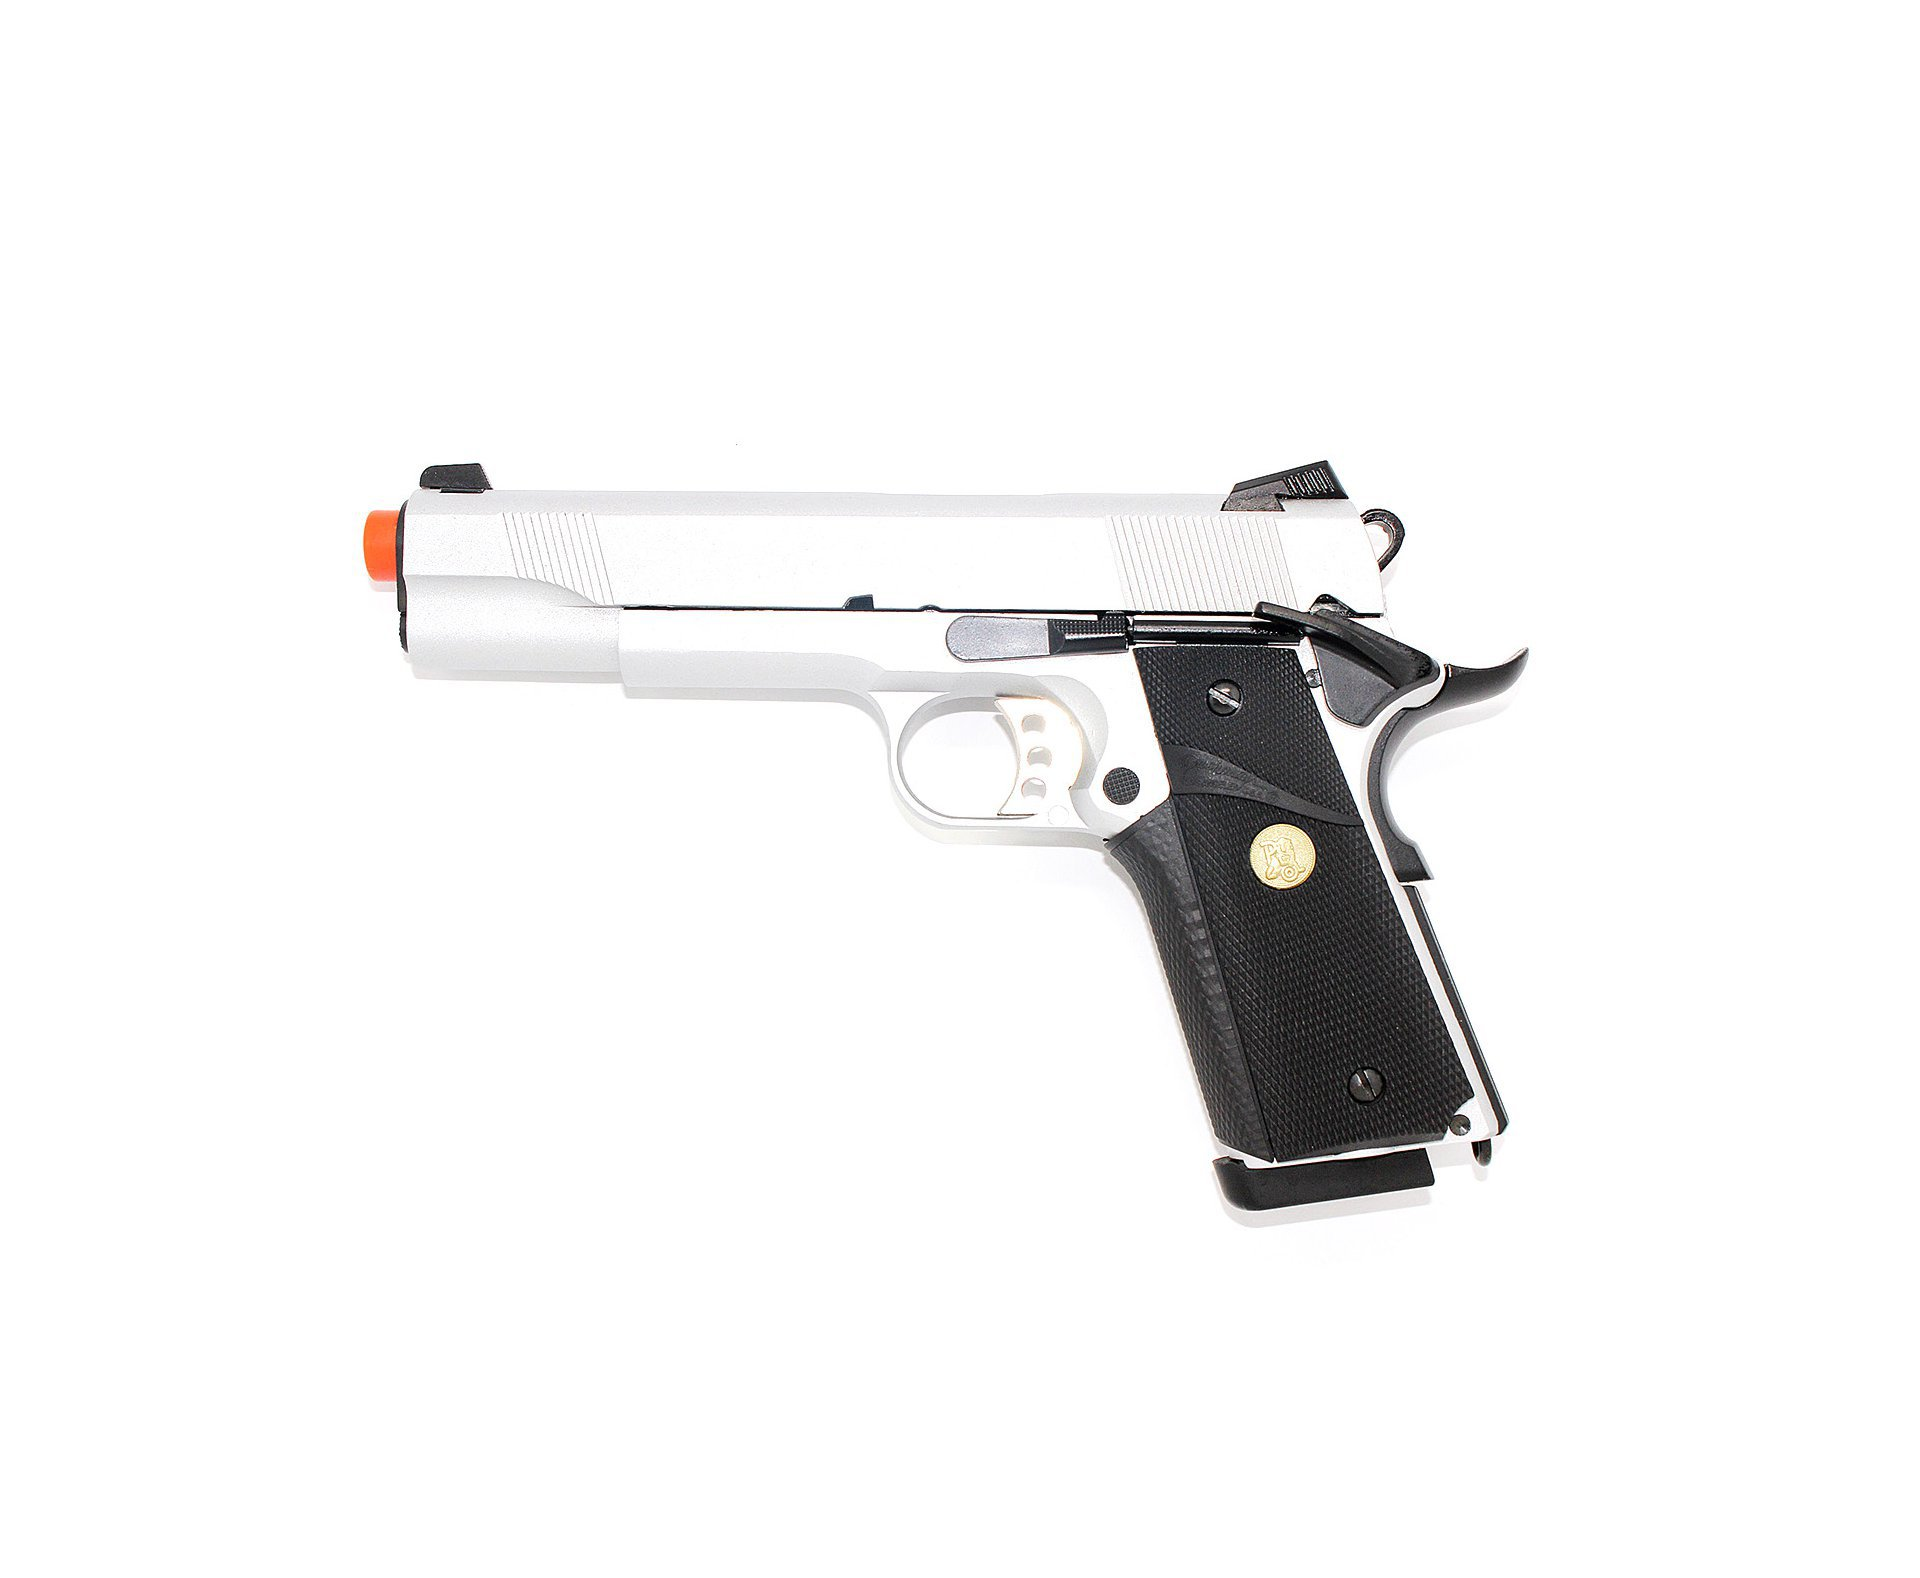 Pistola De Airsoft Gbb M1911 Inox Double Bell 728y Blowback 6.0mm + Case